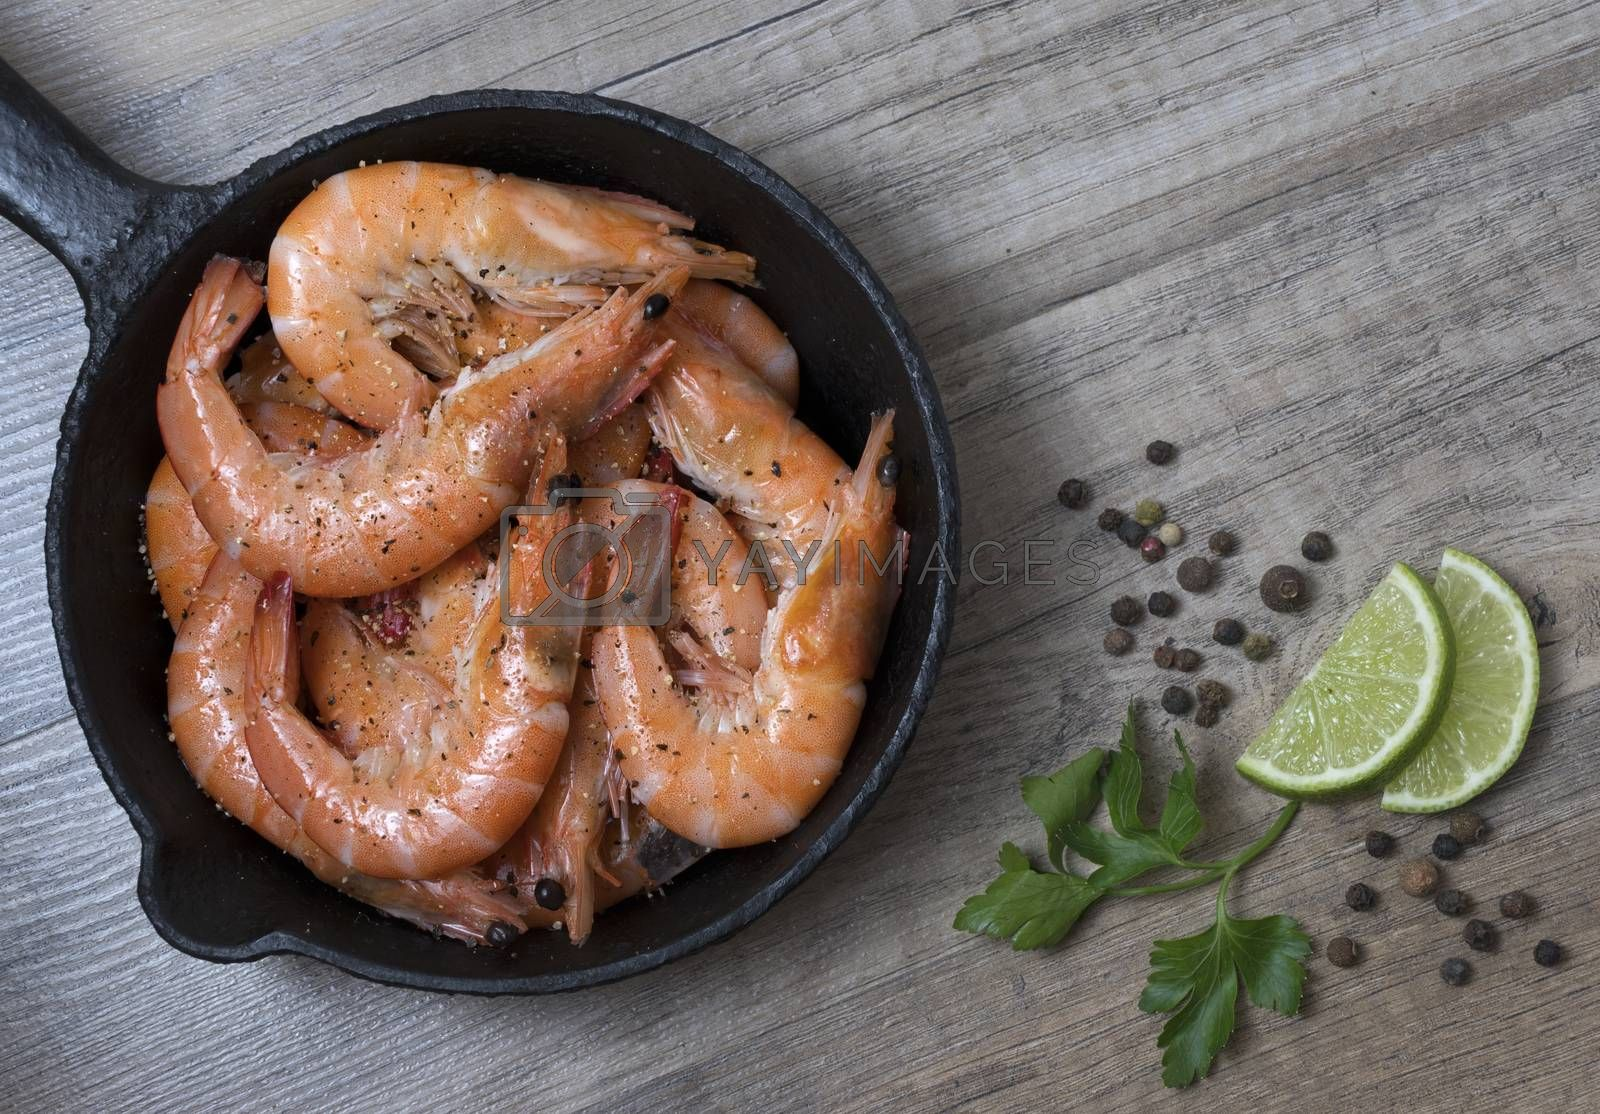 Royalty free image of Grilled prawn shrimps in a frying pan with spices, on wooden bac by phortcach